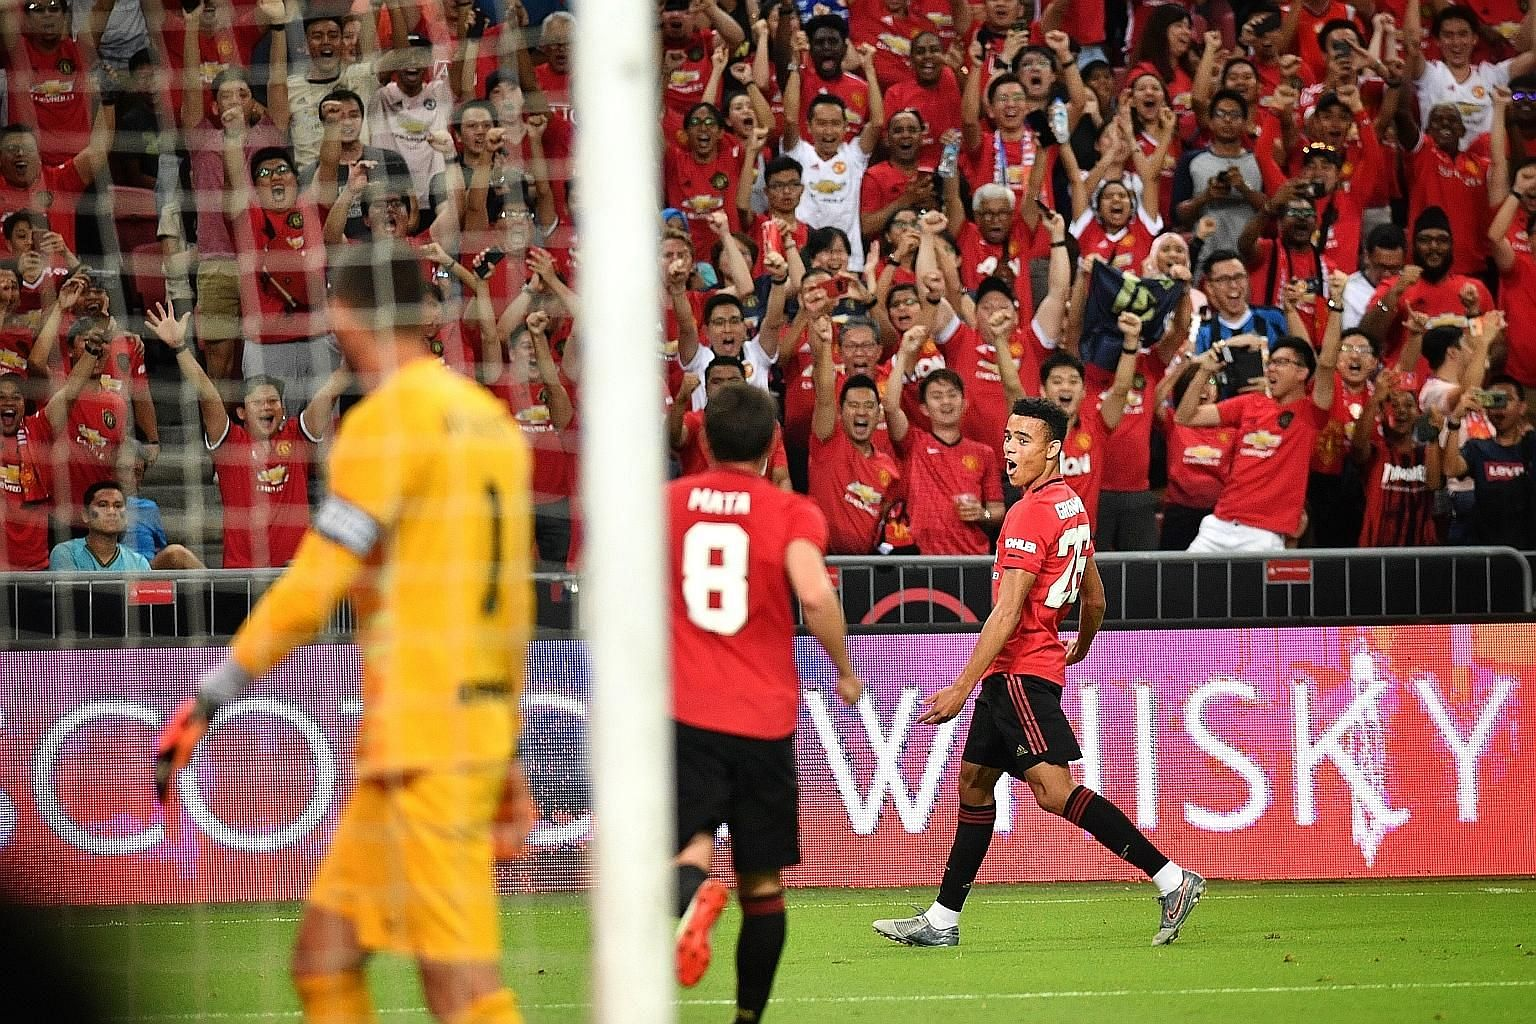 Manchester United's Mason Greenwood (right) celebrating after scoring the only goal of the game against Inter Milan at the National Stadium last night. The match attracted a sold-out crowd of more than 52,000.